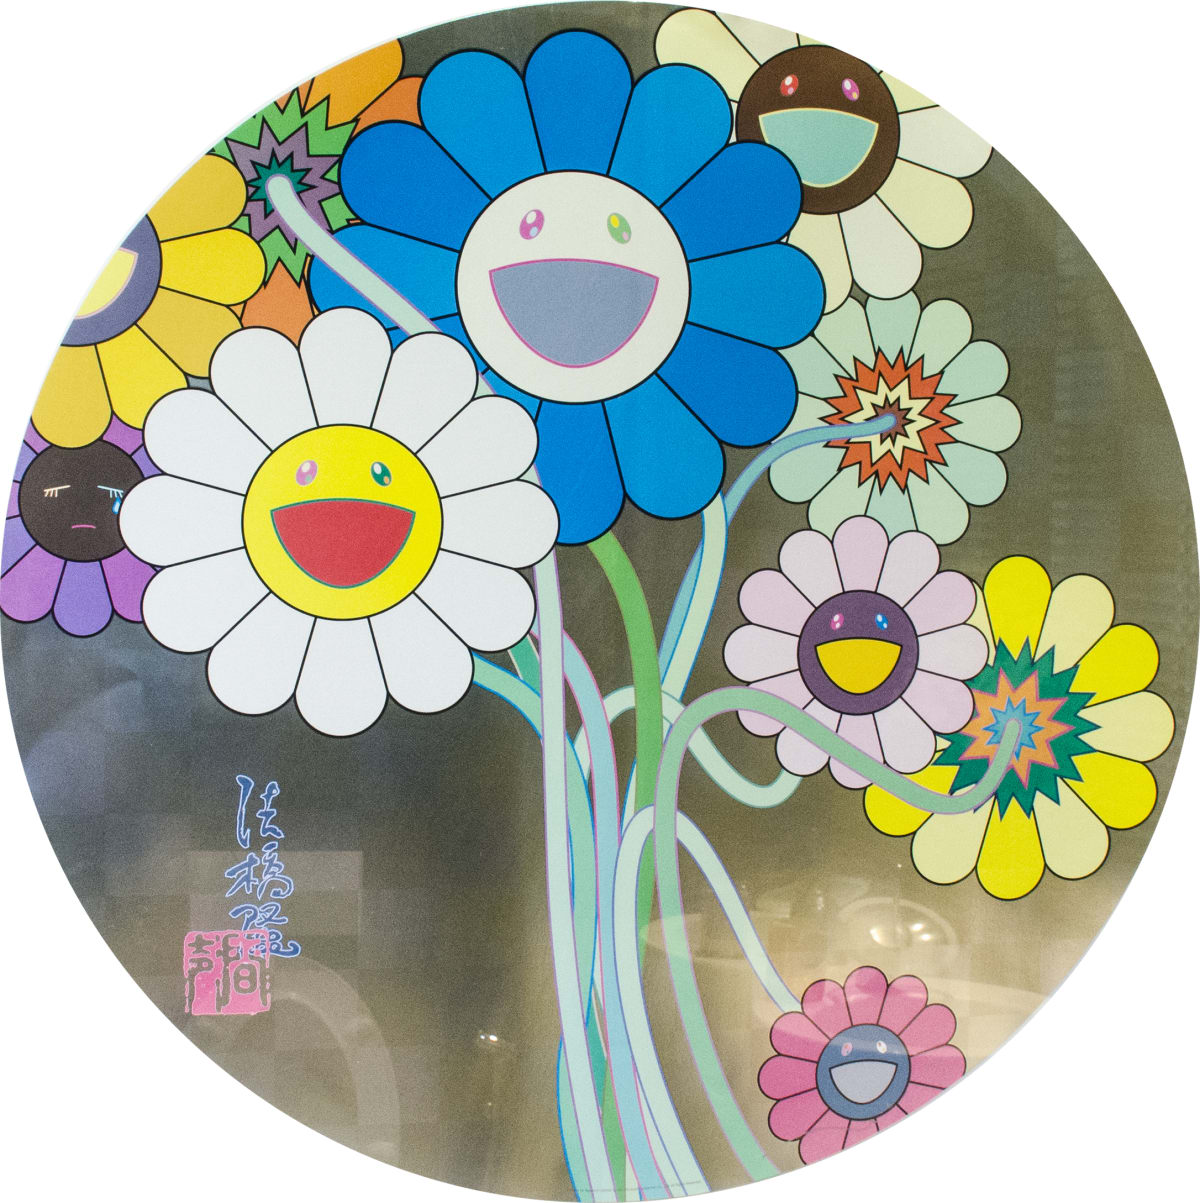 Takashi Murakami, Flowers For Algernon, 2010